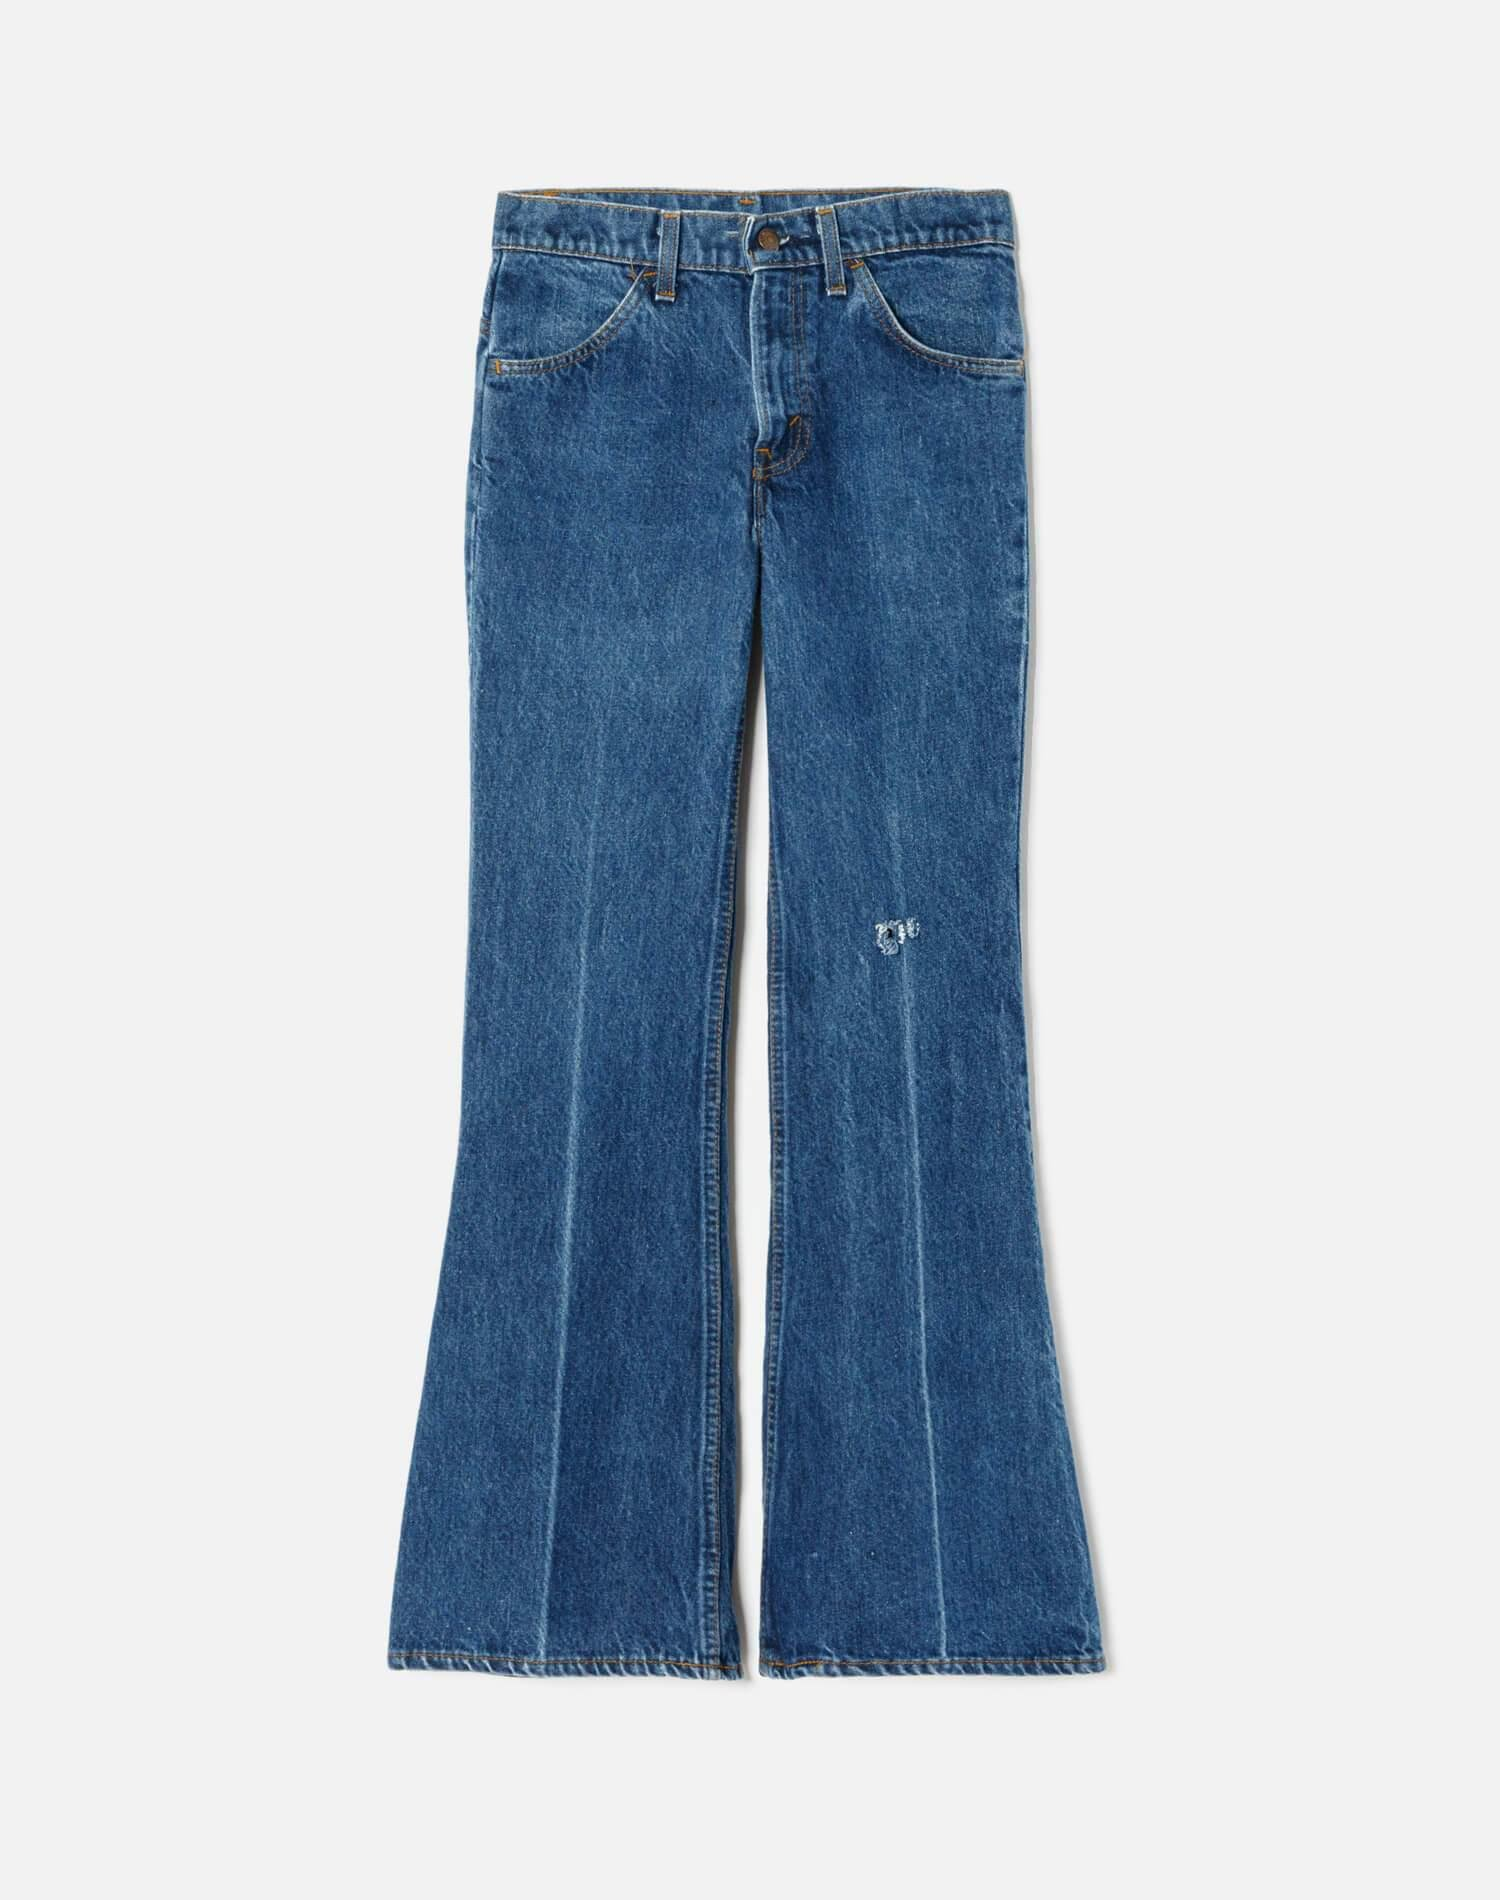 1970s Vintage Levi's Low Rise Wide Leg With Rip Size 25 - #171